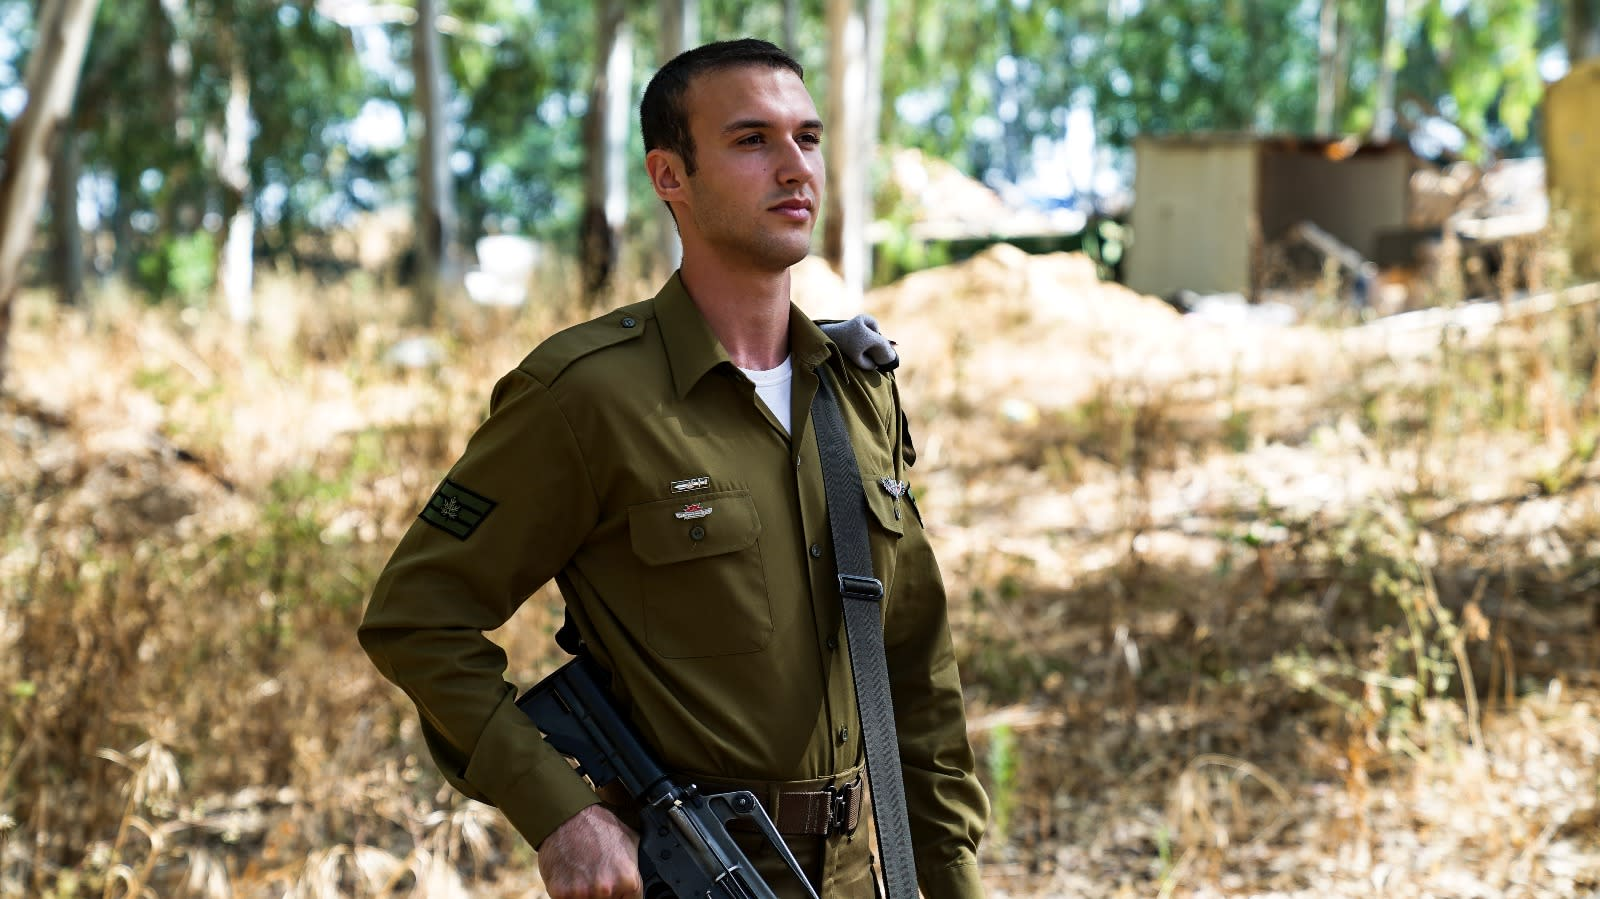 A soldier with his new pin and rank (COURTESY IDF SPOKEMAN'S OFFICE)